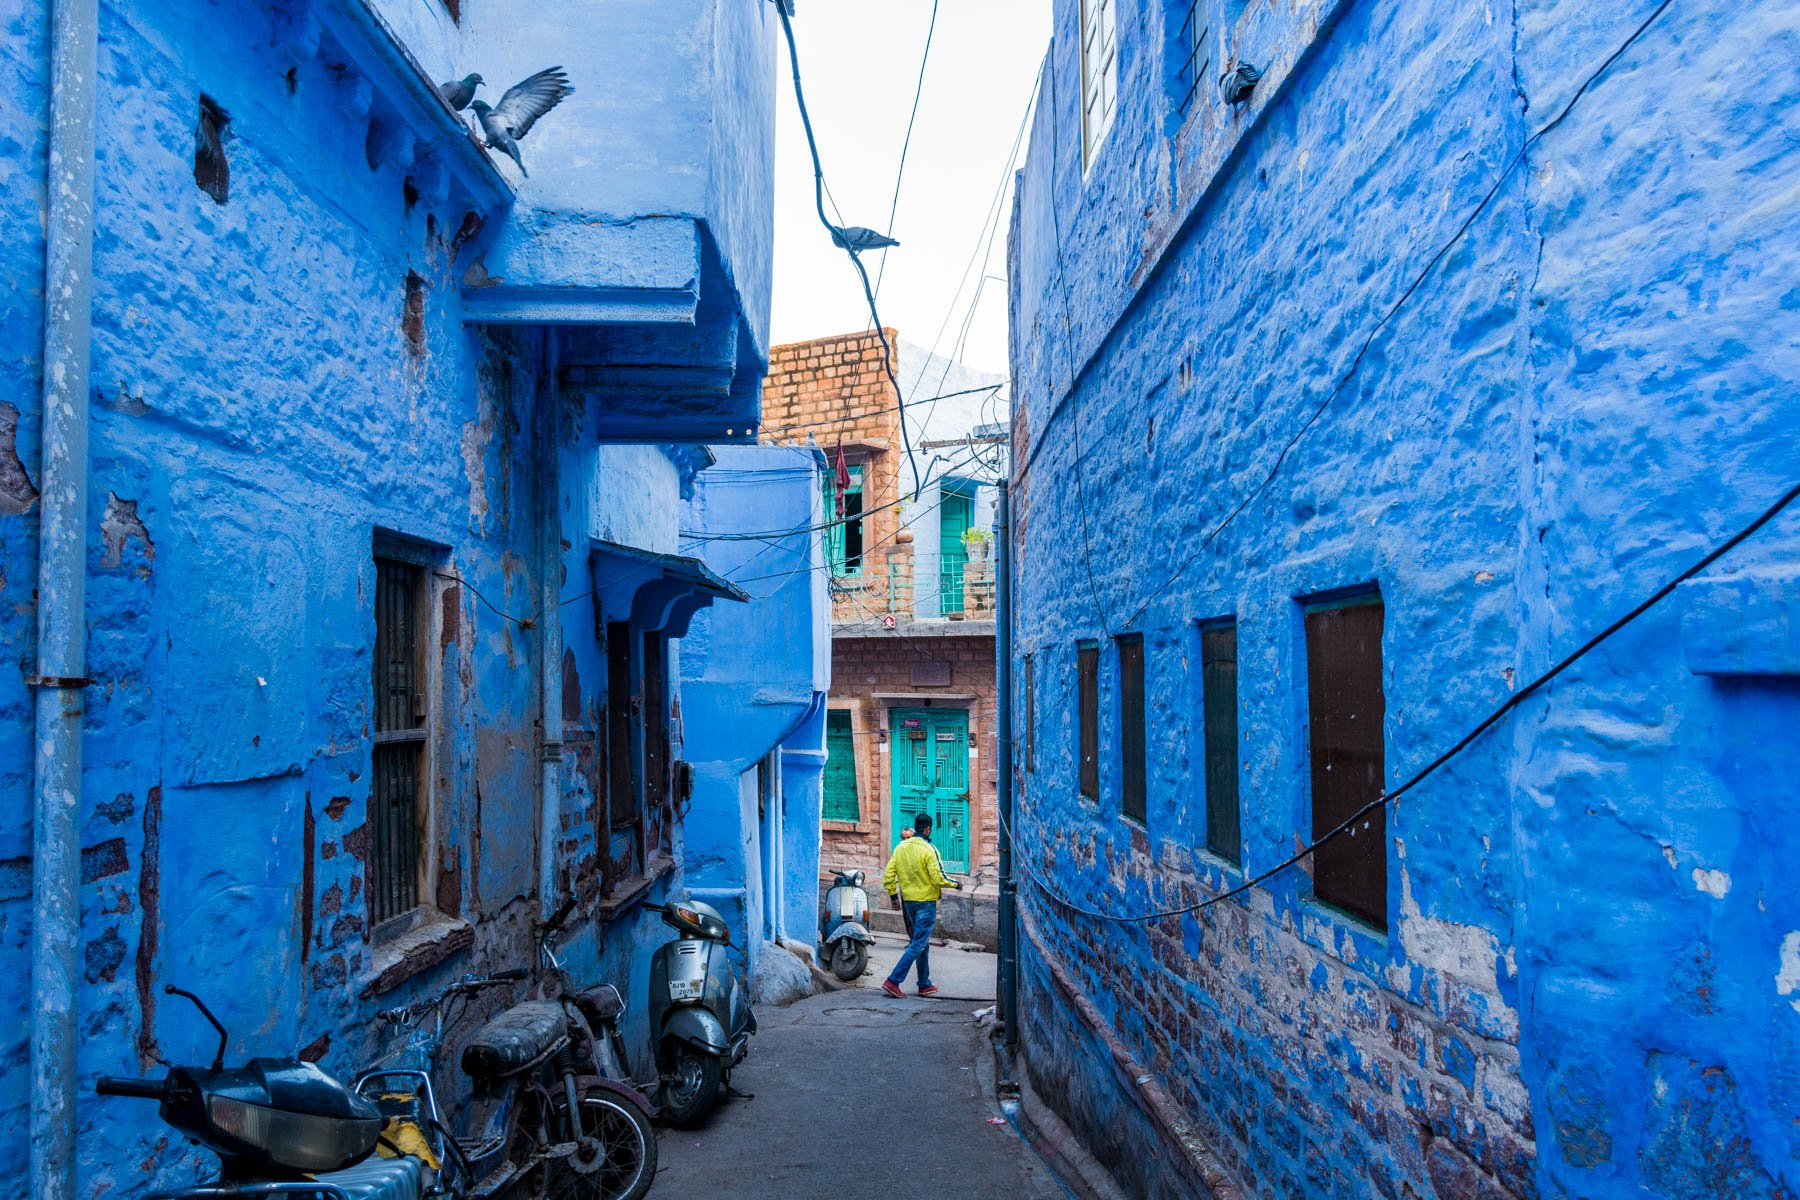 A man walking through a blue neighborhood in Jodhpur